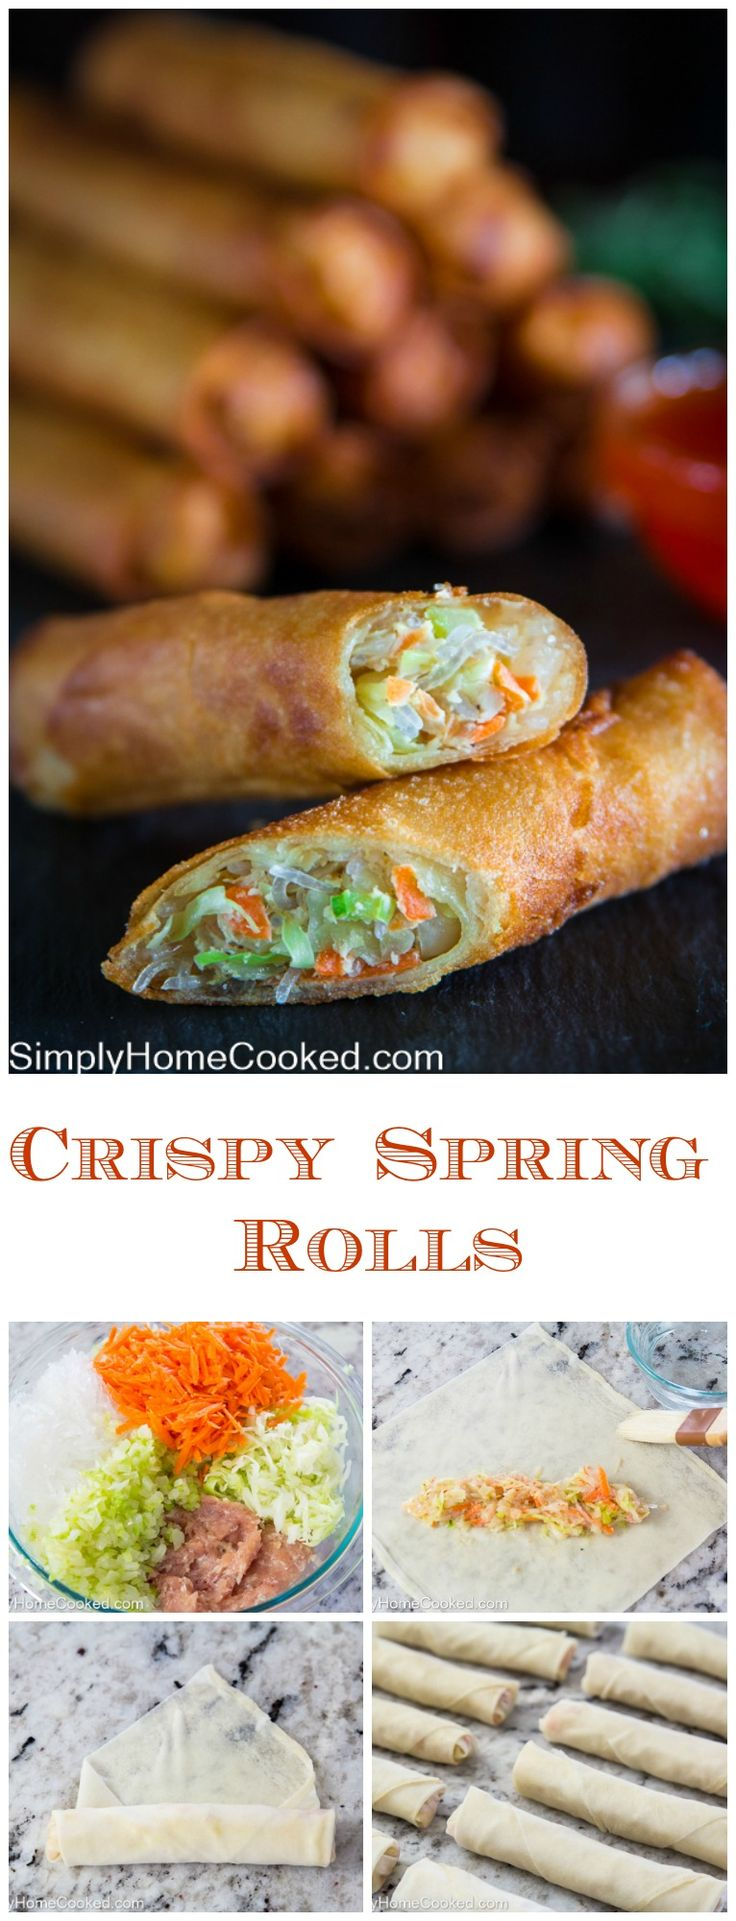 Easy fried spring rolls. I feel like this may need more seasonings.